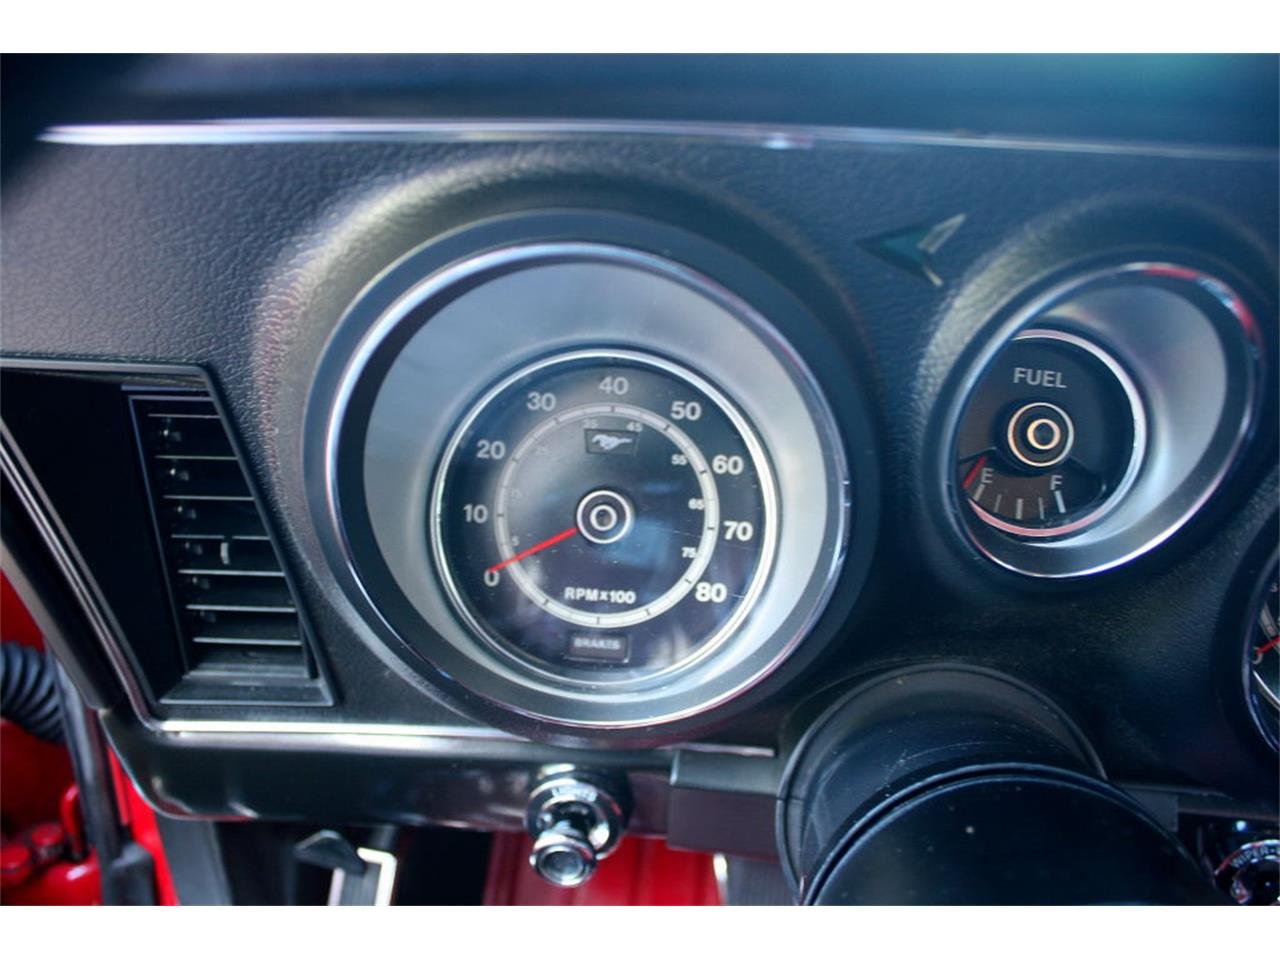 Large Picture of Classic '72 Mustang located in Florida Offered by MJC Classic Cars - MGWW